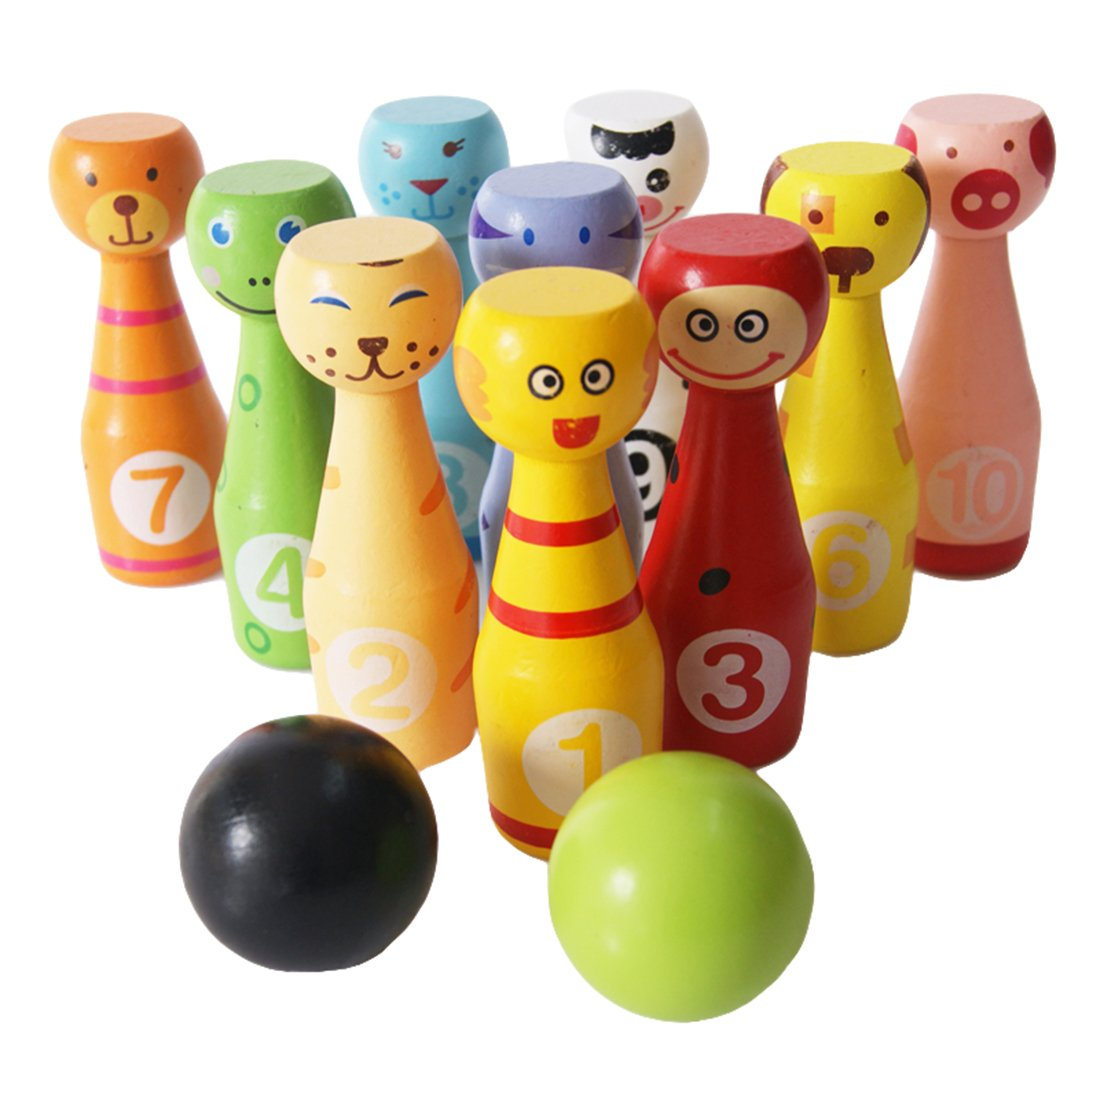 Lewo Wooden Bowling Ball Games Toys Kids Creative Birthday Present 8